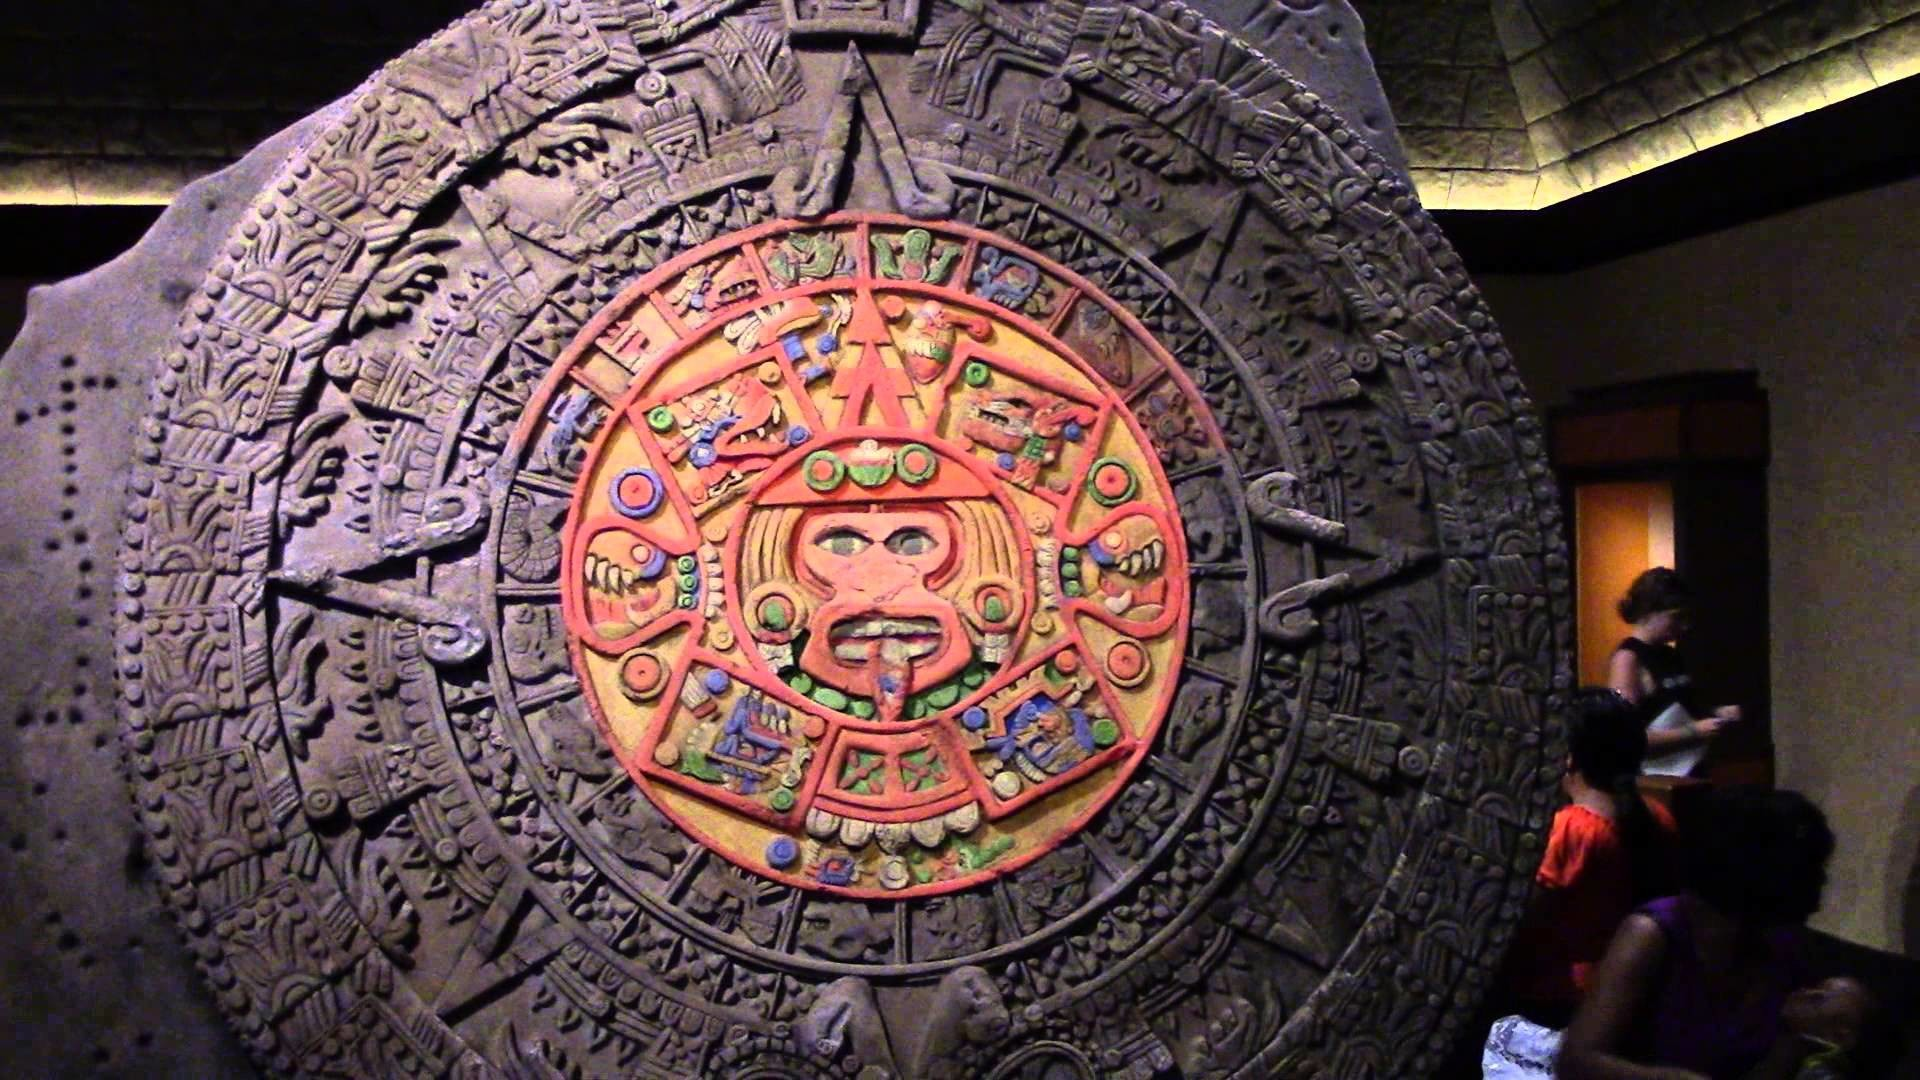 1920x1080 Awesome Slo-Mo Coloration of Aztec Calendar at Mexico Pavilion - EPCOT -  Walt Disney World